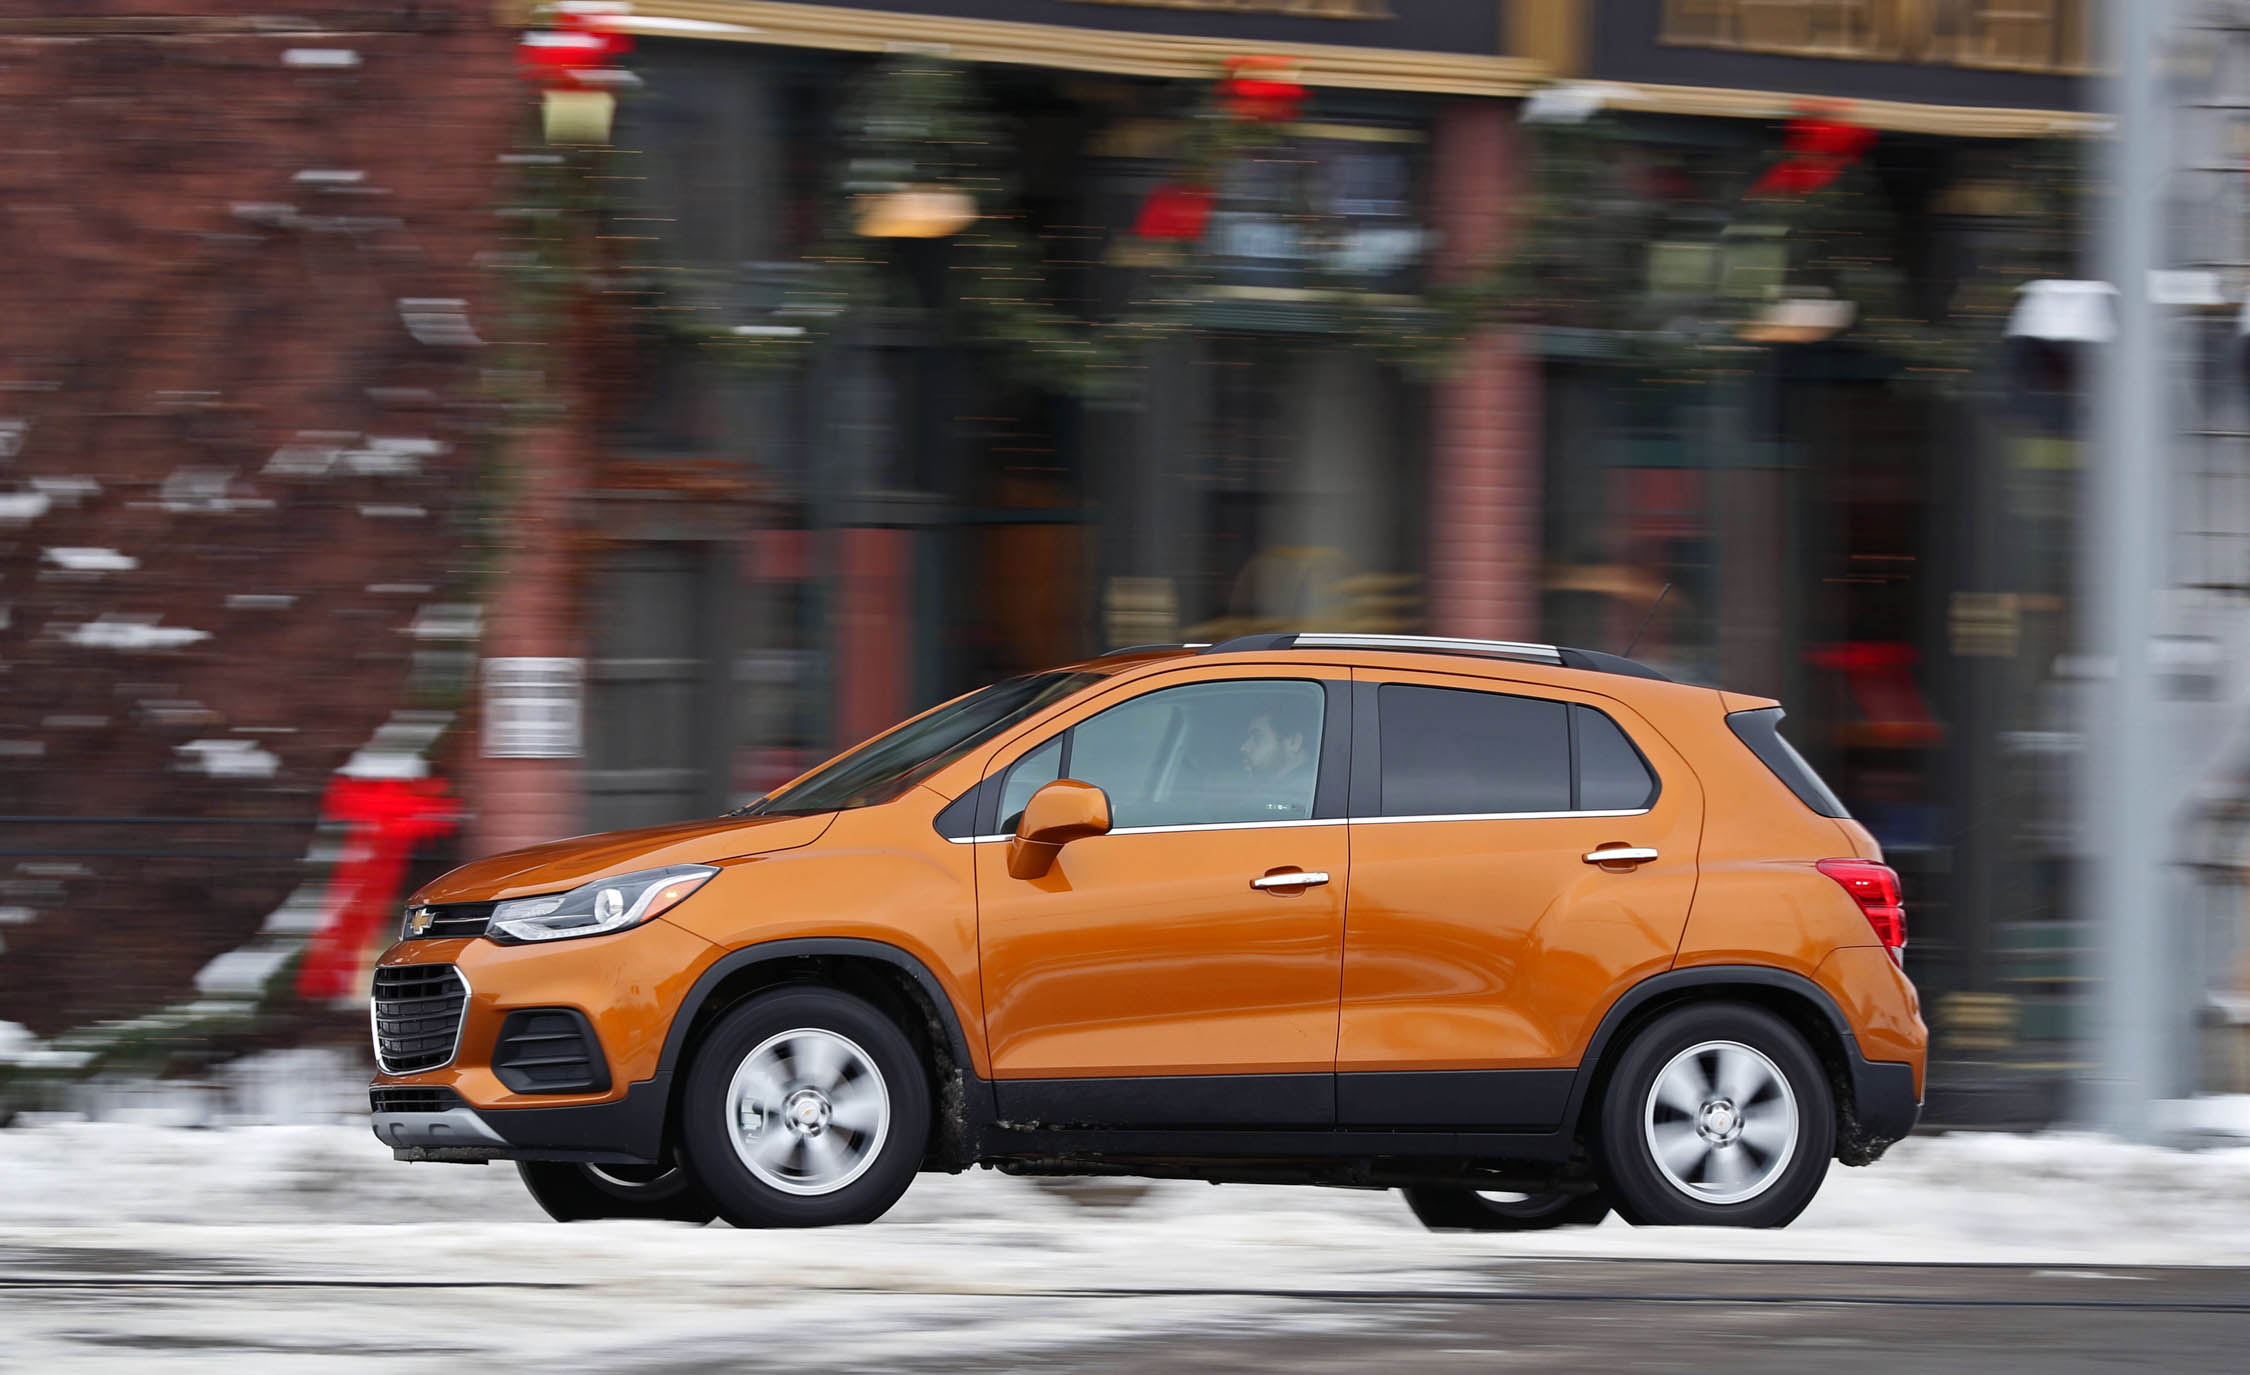 2017 Chevrolet Trax Test Drive Side And Front View (Photo 41 of 47)